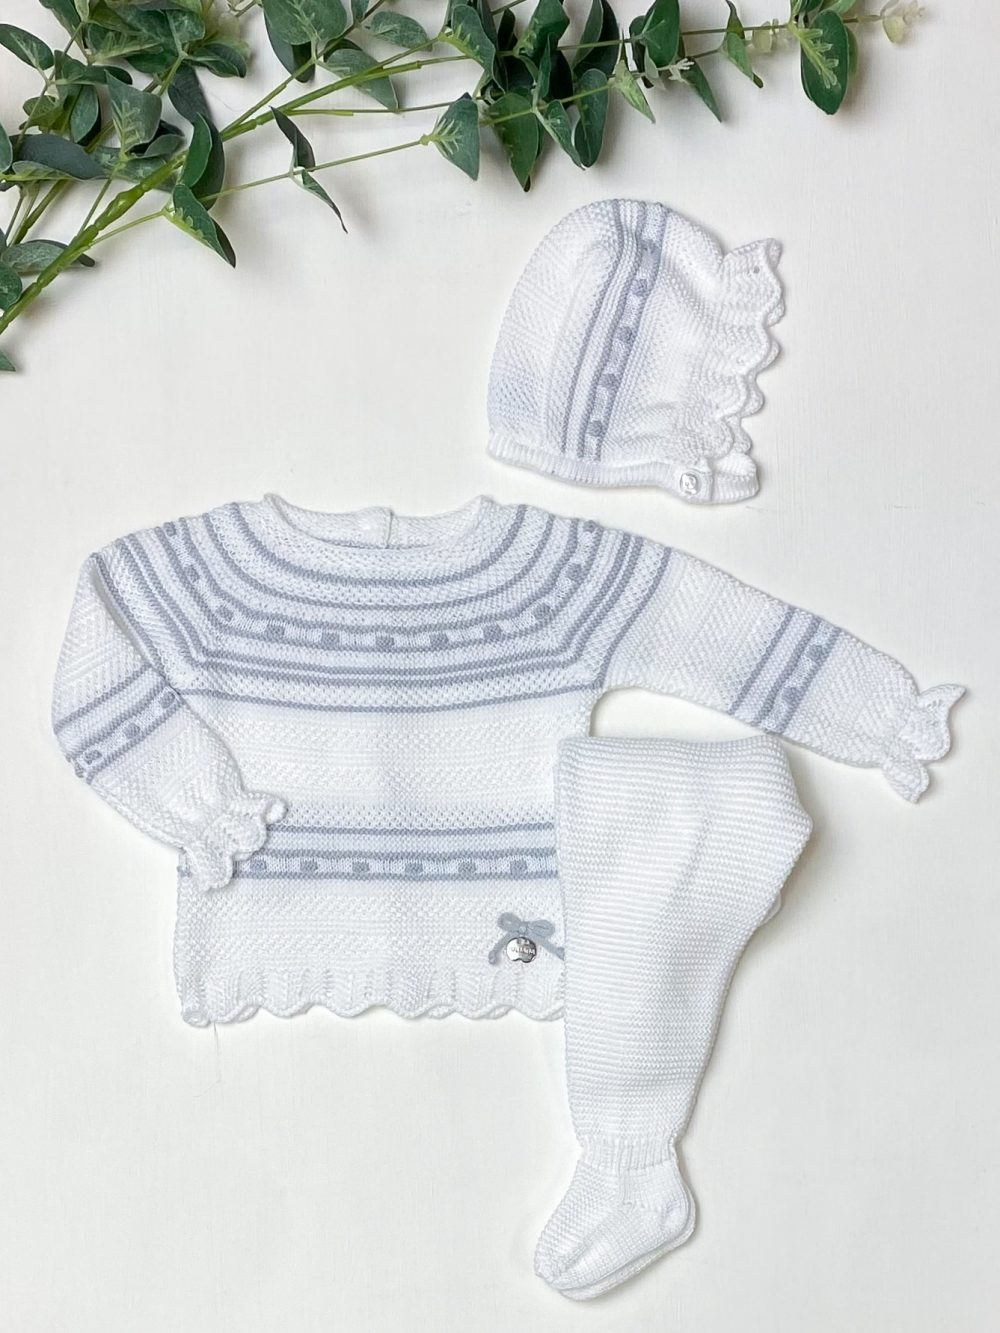 White & Silver Knitted 3 Piece